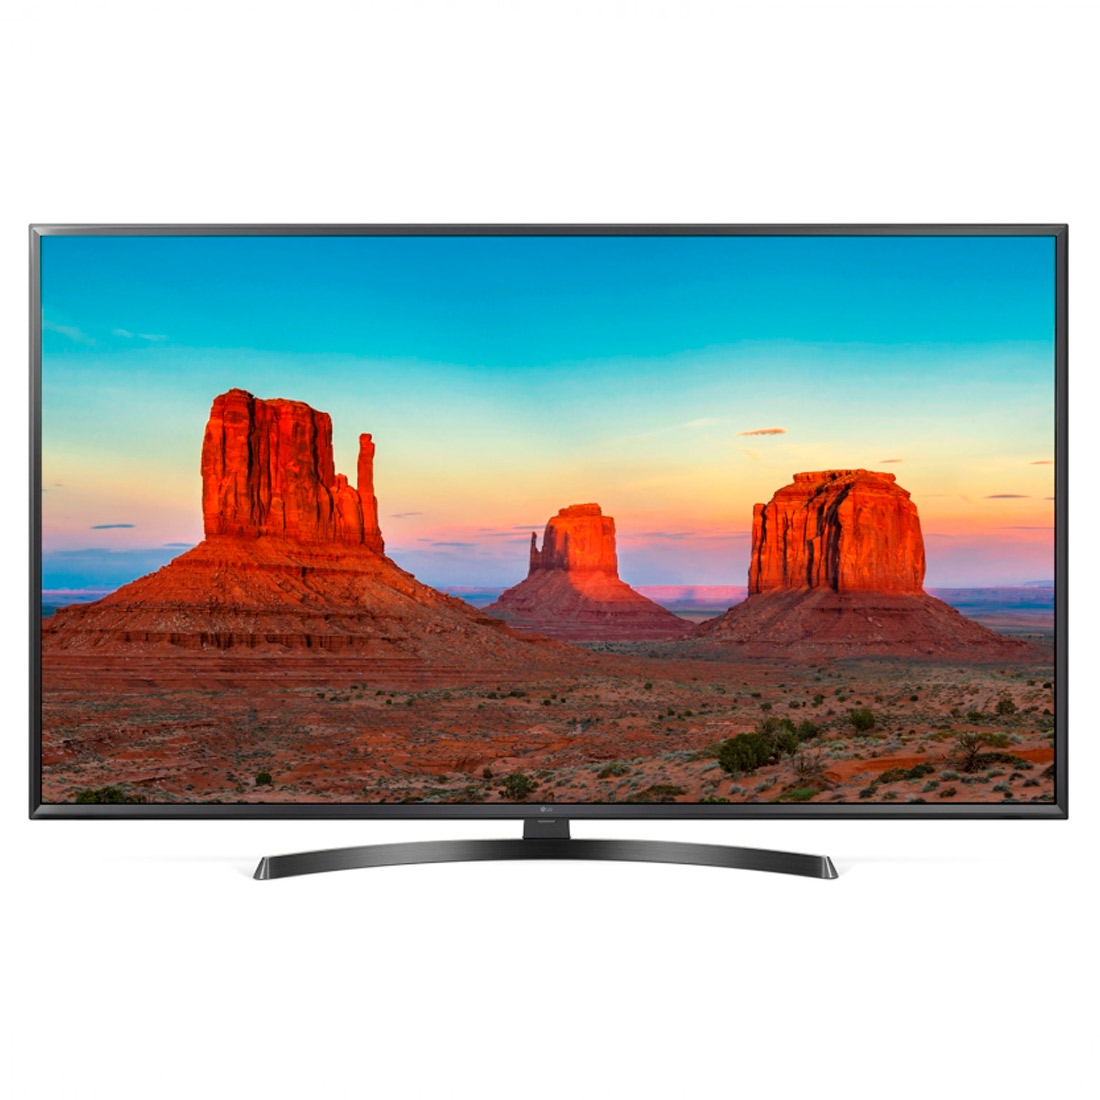 "Smart TV LG 65UK6350 65"" Pulgadas 4K HDR Activo"